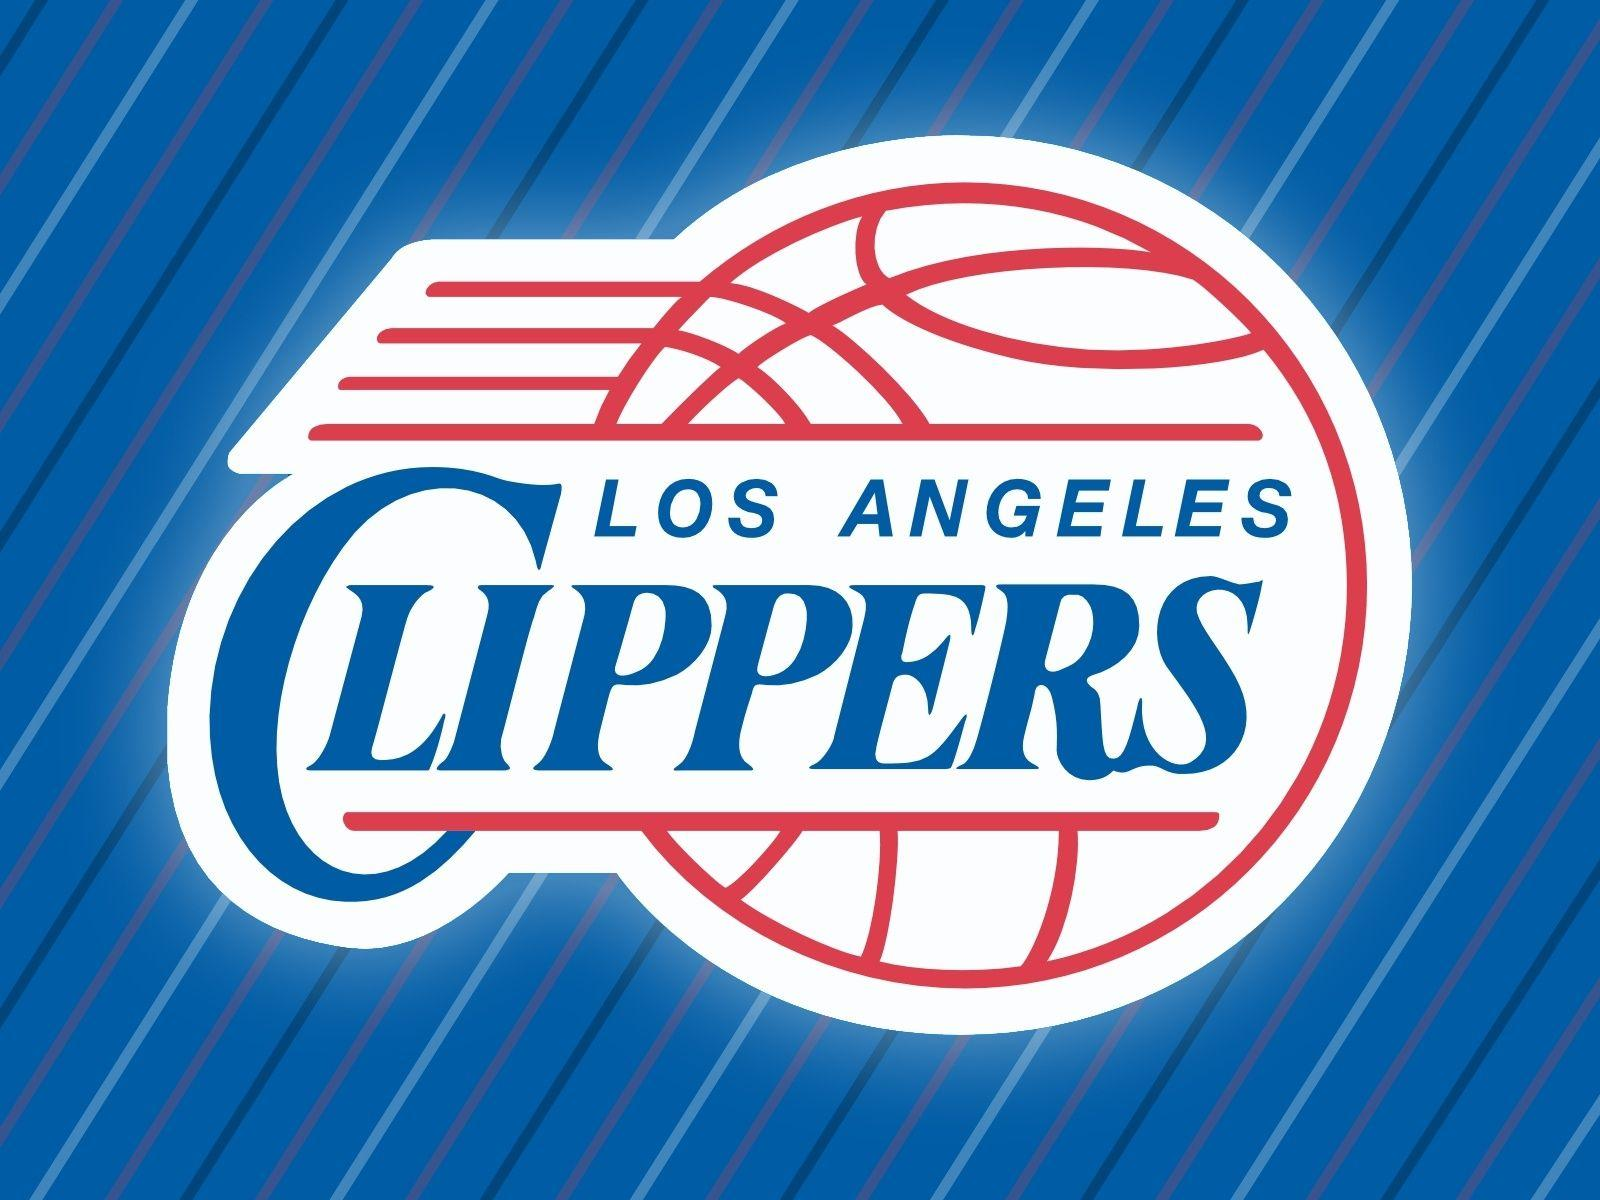 Los Angeles Clippers Wallpaper | 1600x1200 | ID:25838